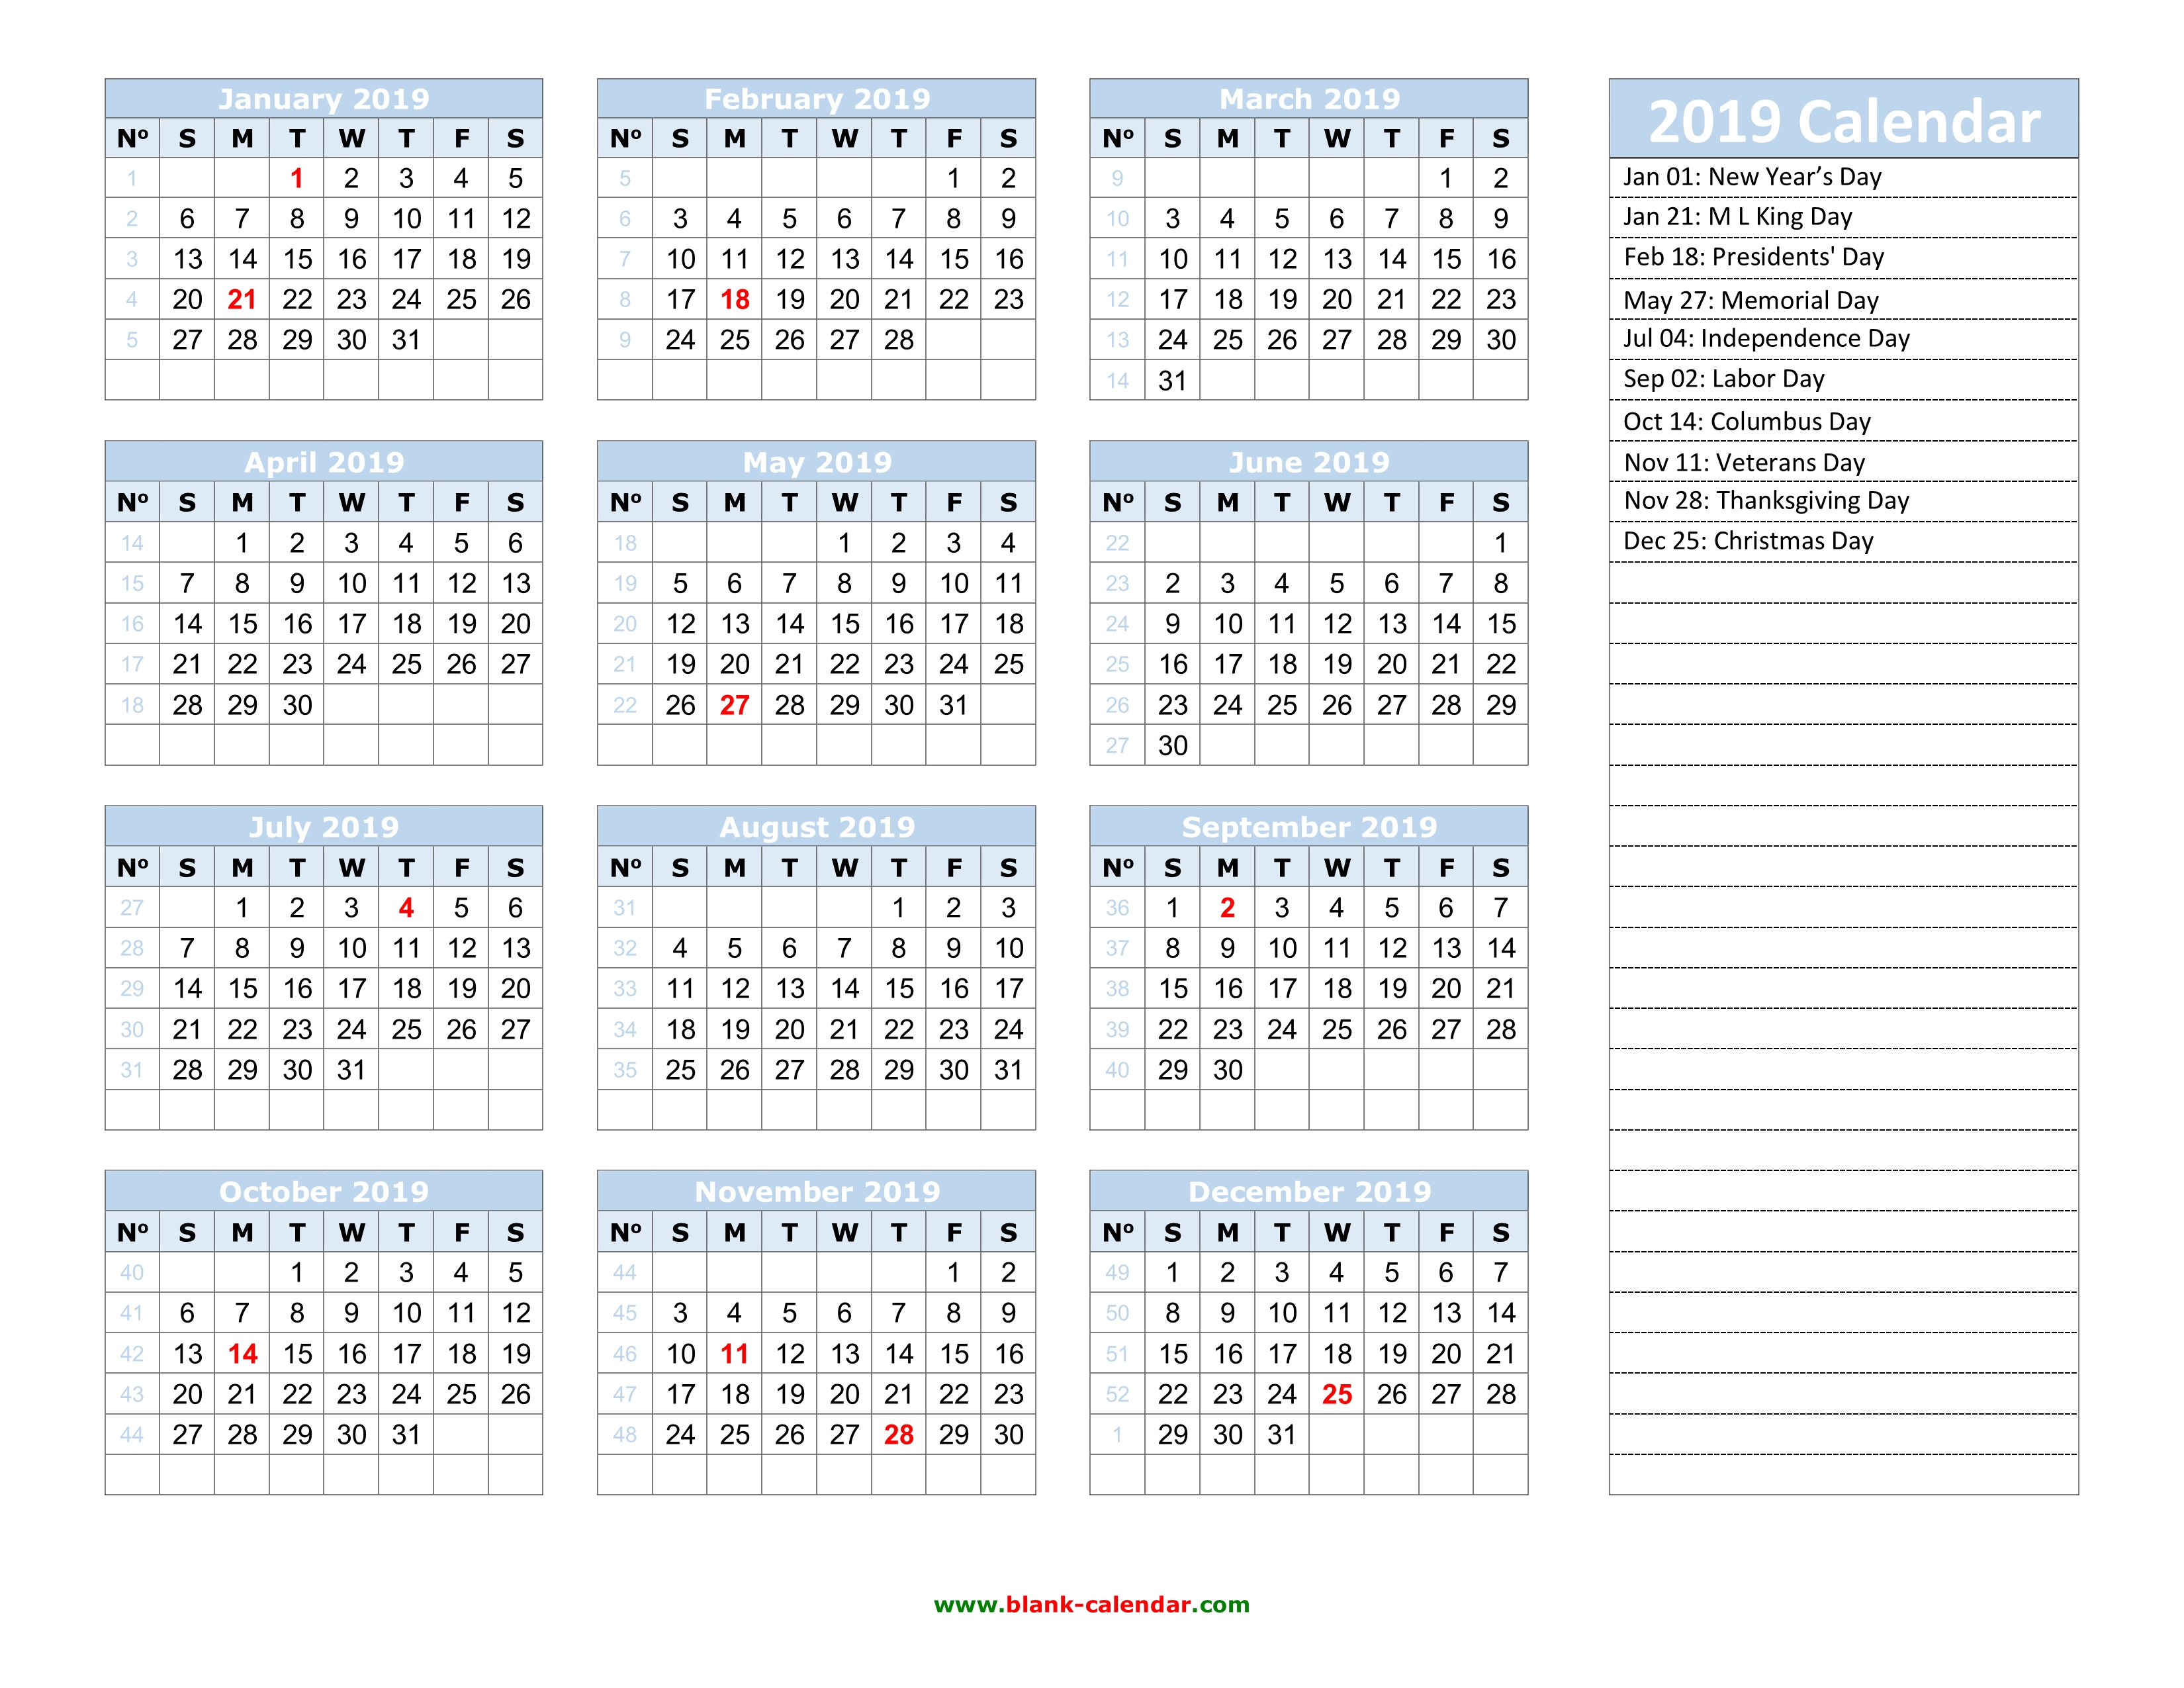 Tamil New Year 2019 Calendar With Yearly Free Download And Print